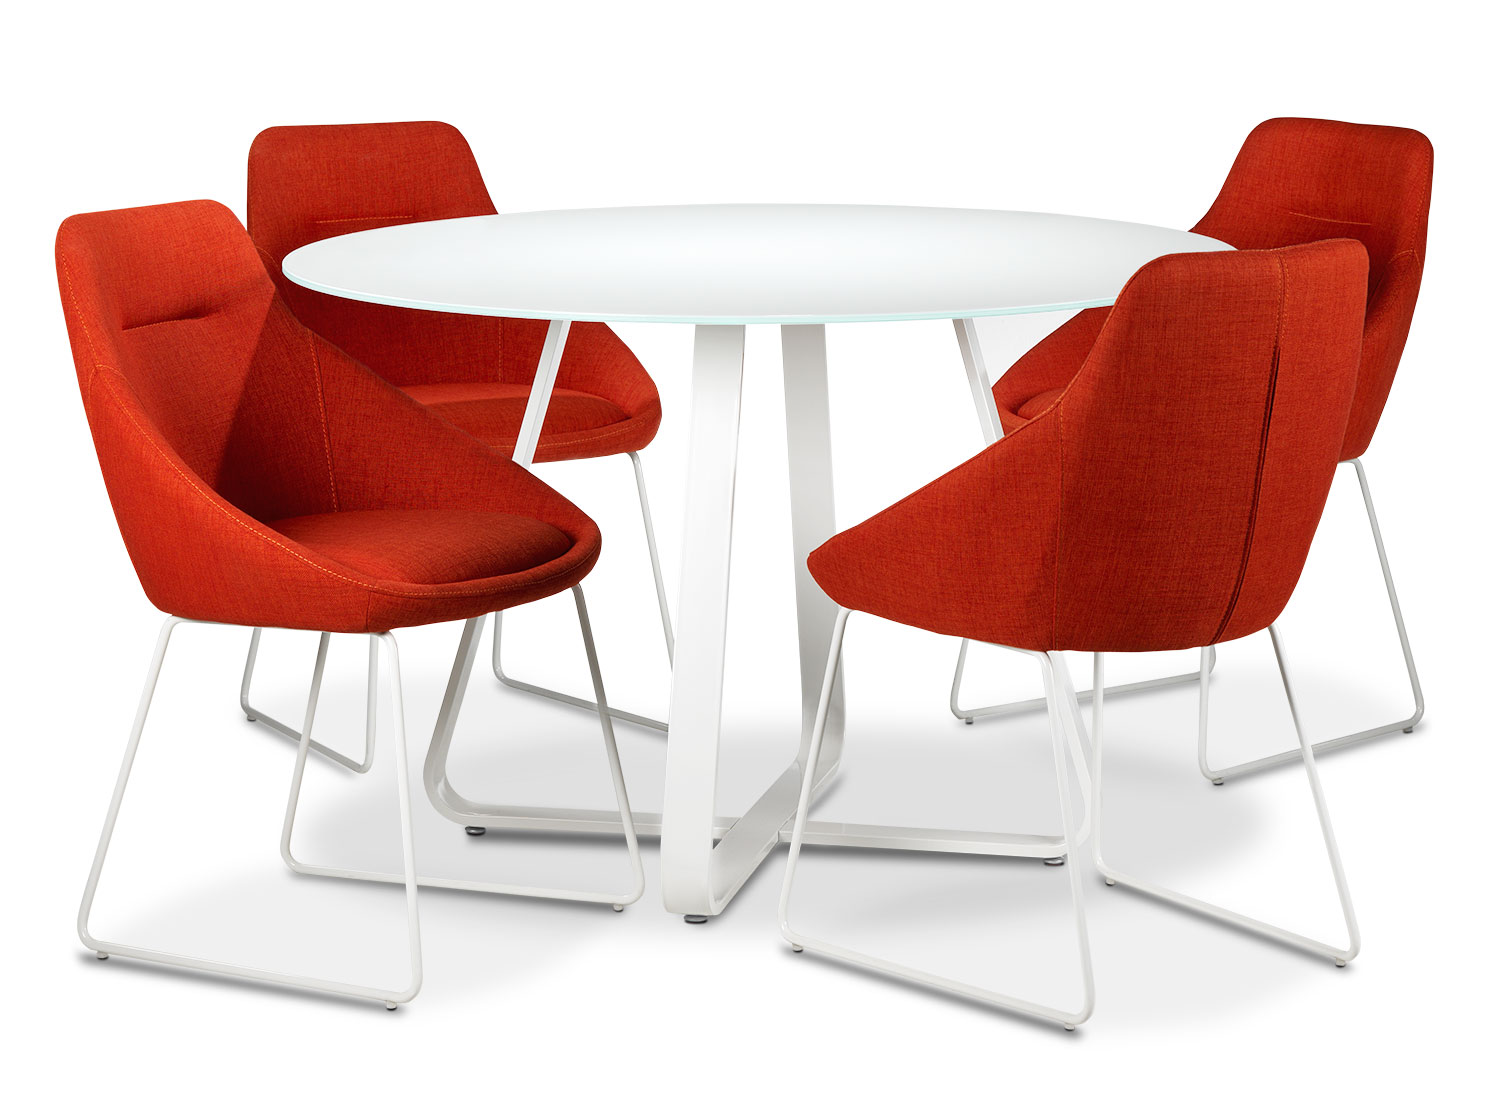 Sunshine 5-Piece Dinette Set - Poppy Red